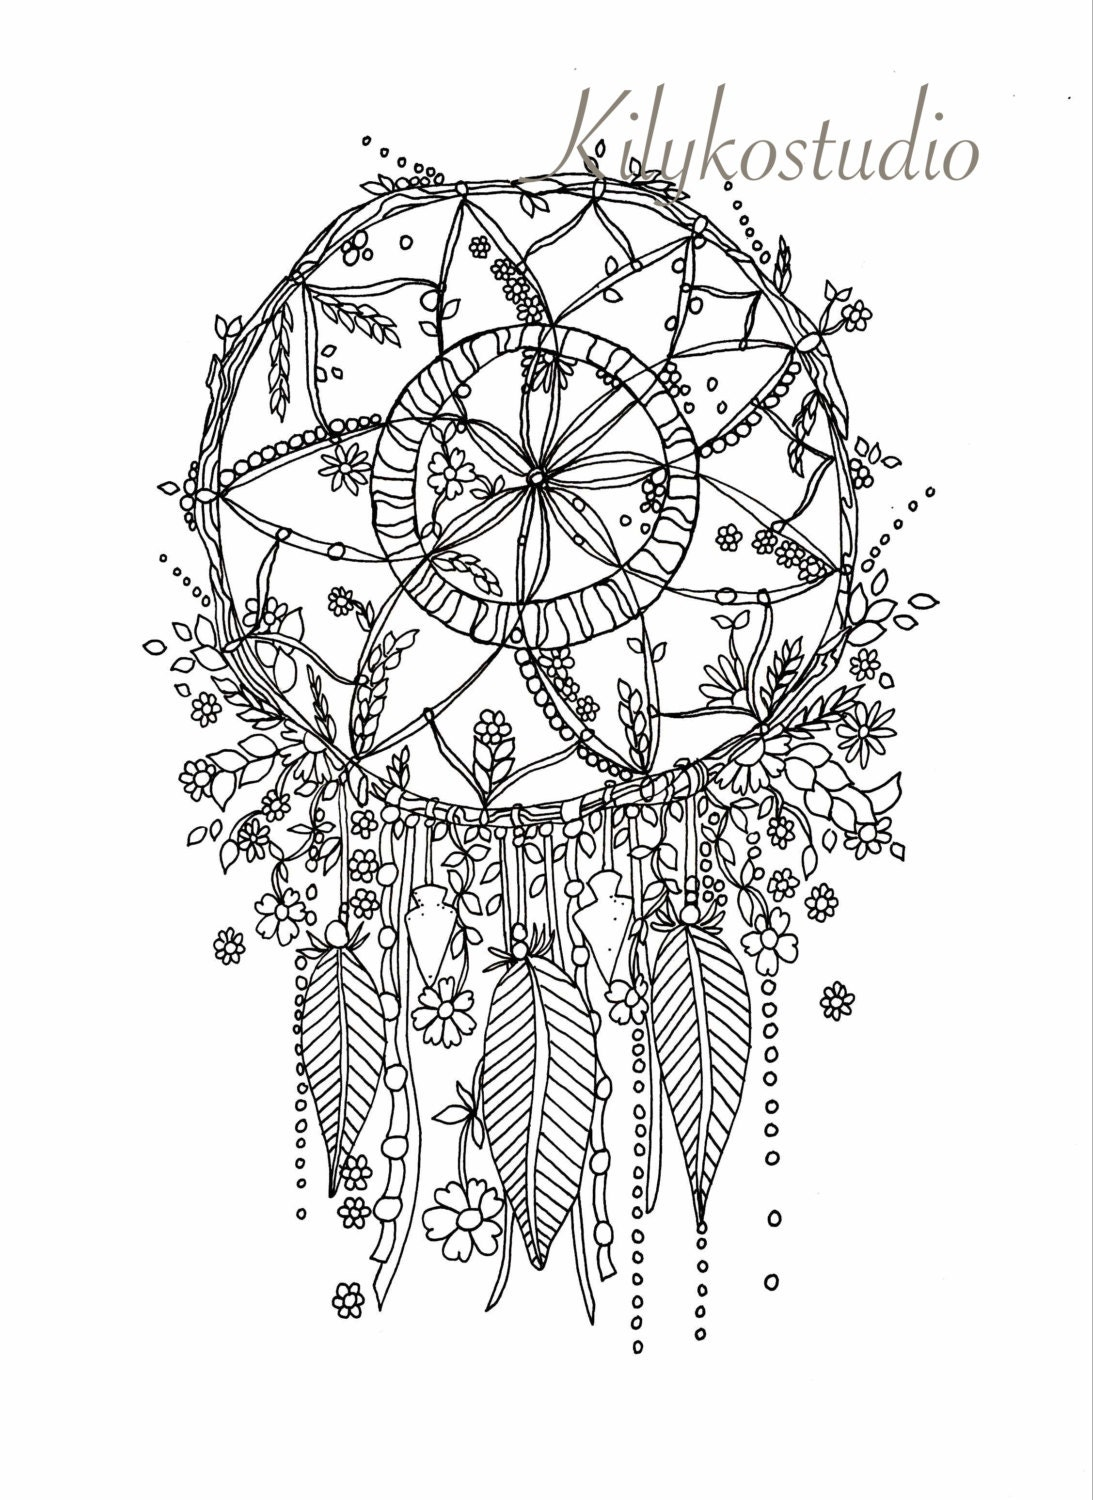 wildflower coloring pages - dream catcher botanical wildflower adult coloring page